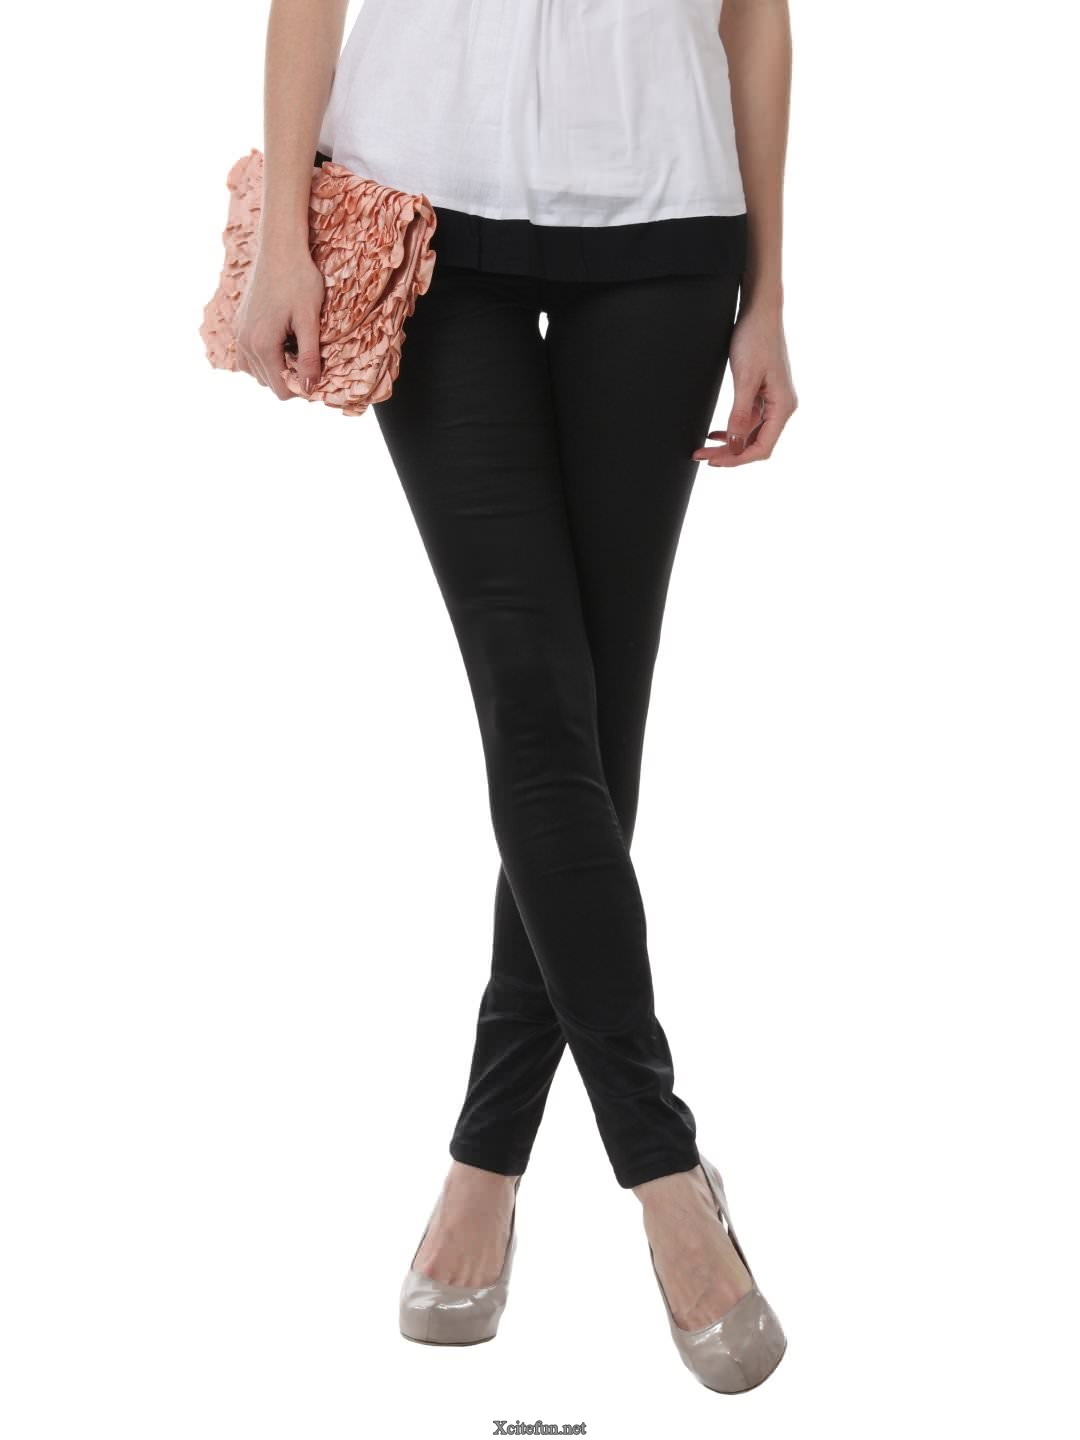 Girls Tops And Shirts With Pants And Tights  XciteFunnet